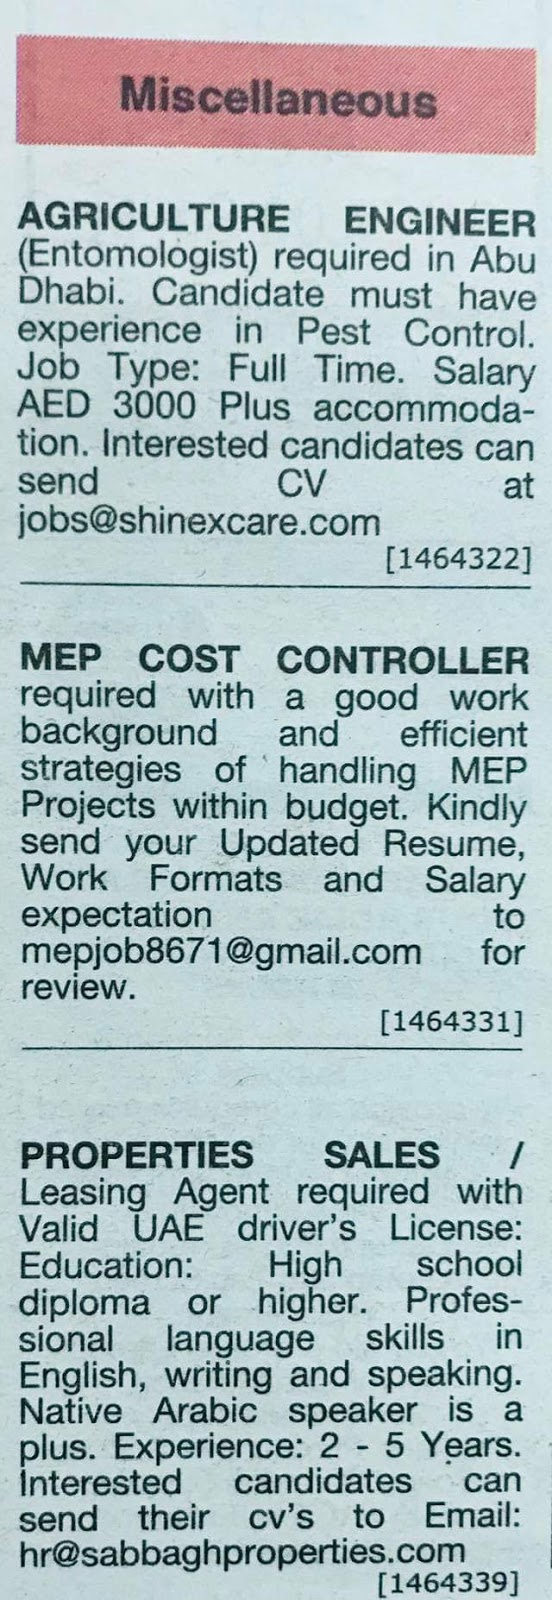 Required Agriculture engineer,mep cost controller, sales